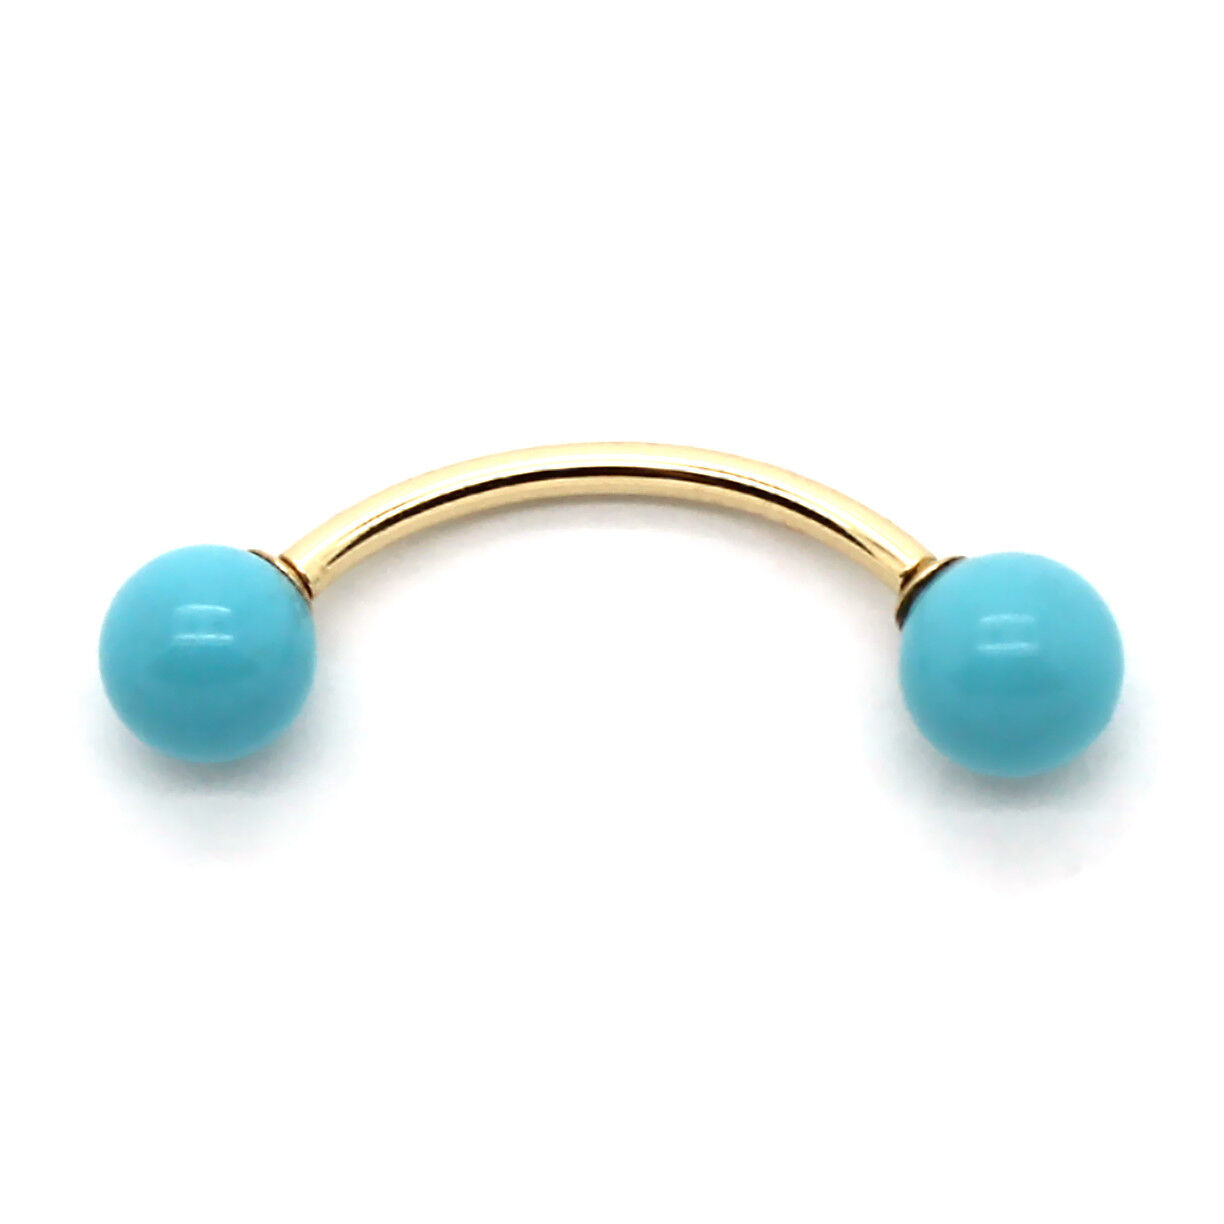 14K Yellow gold Curved Barbell with Turquoise Beads in 14, 16, or 18 Gauge